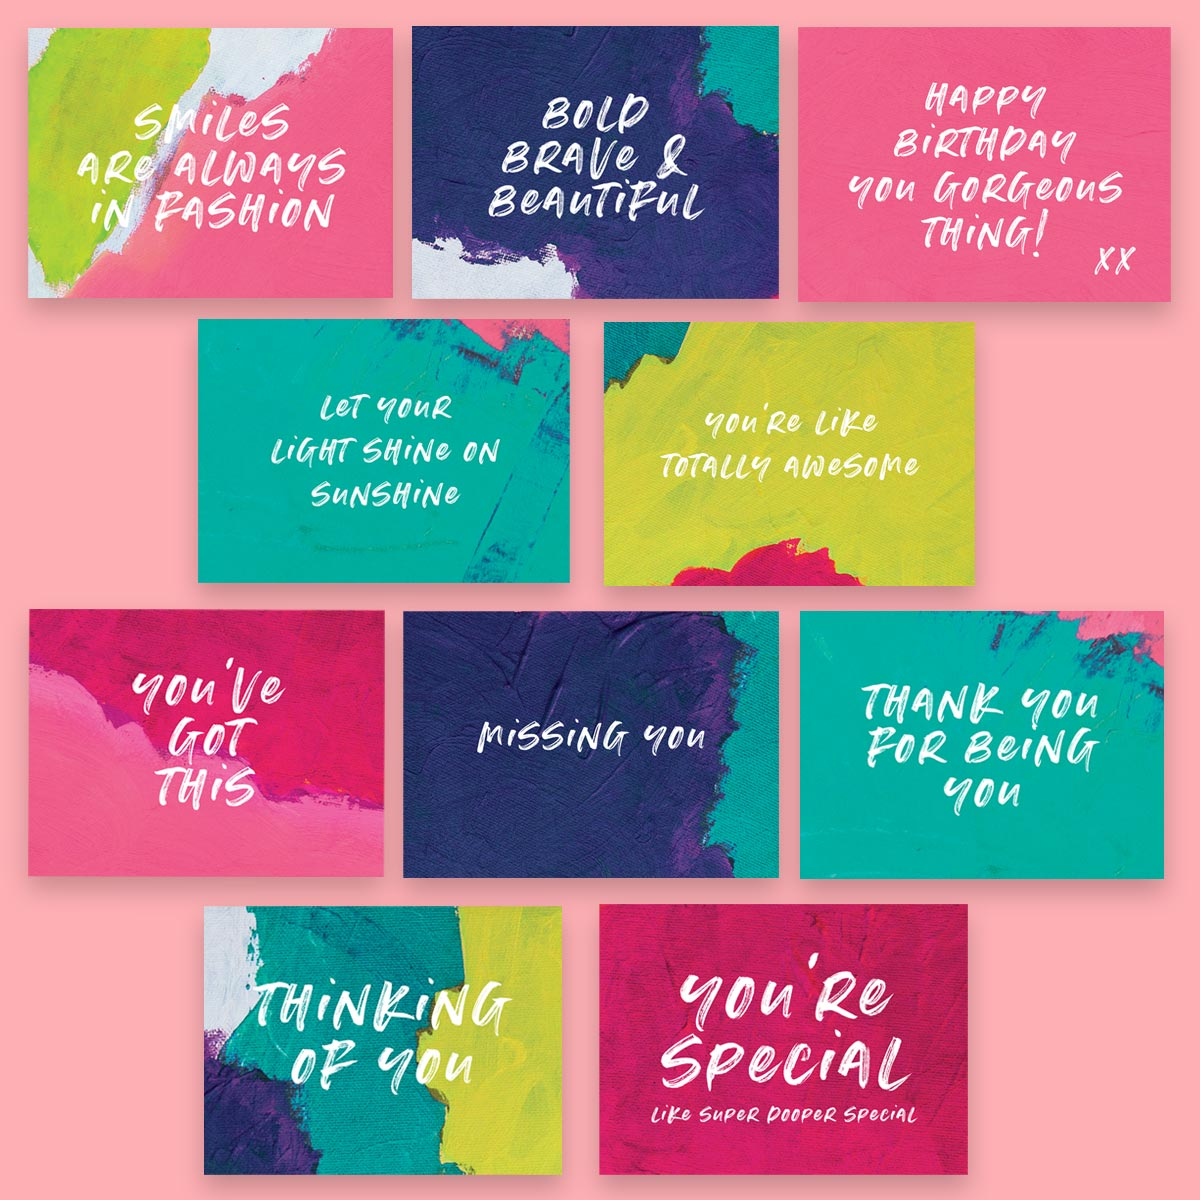 All-Greeting-Cards%20(1).jpg